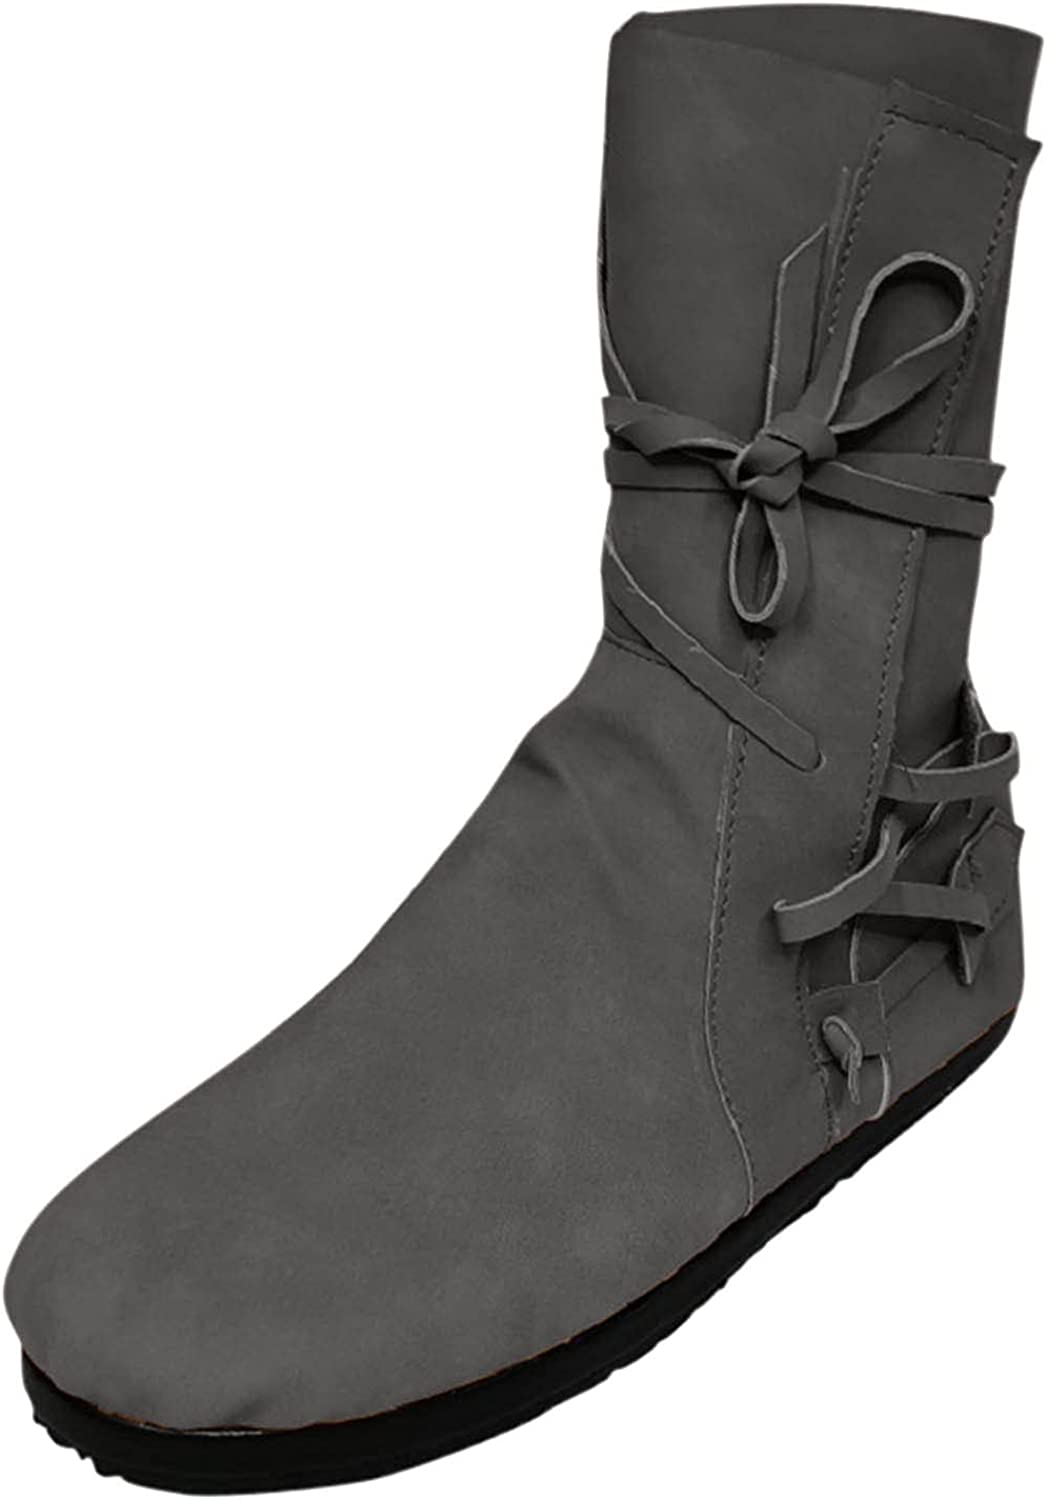 Womens Ankle Boots Fashion Solid Color Strap Flat-Heel Round Toe Casual Short Boots